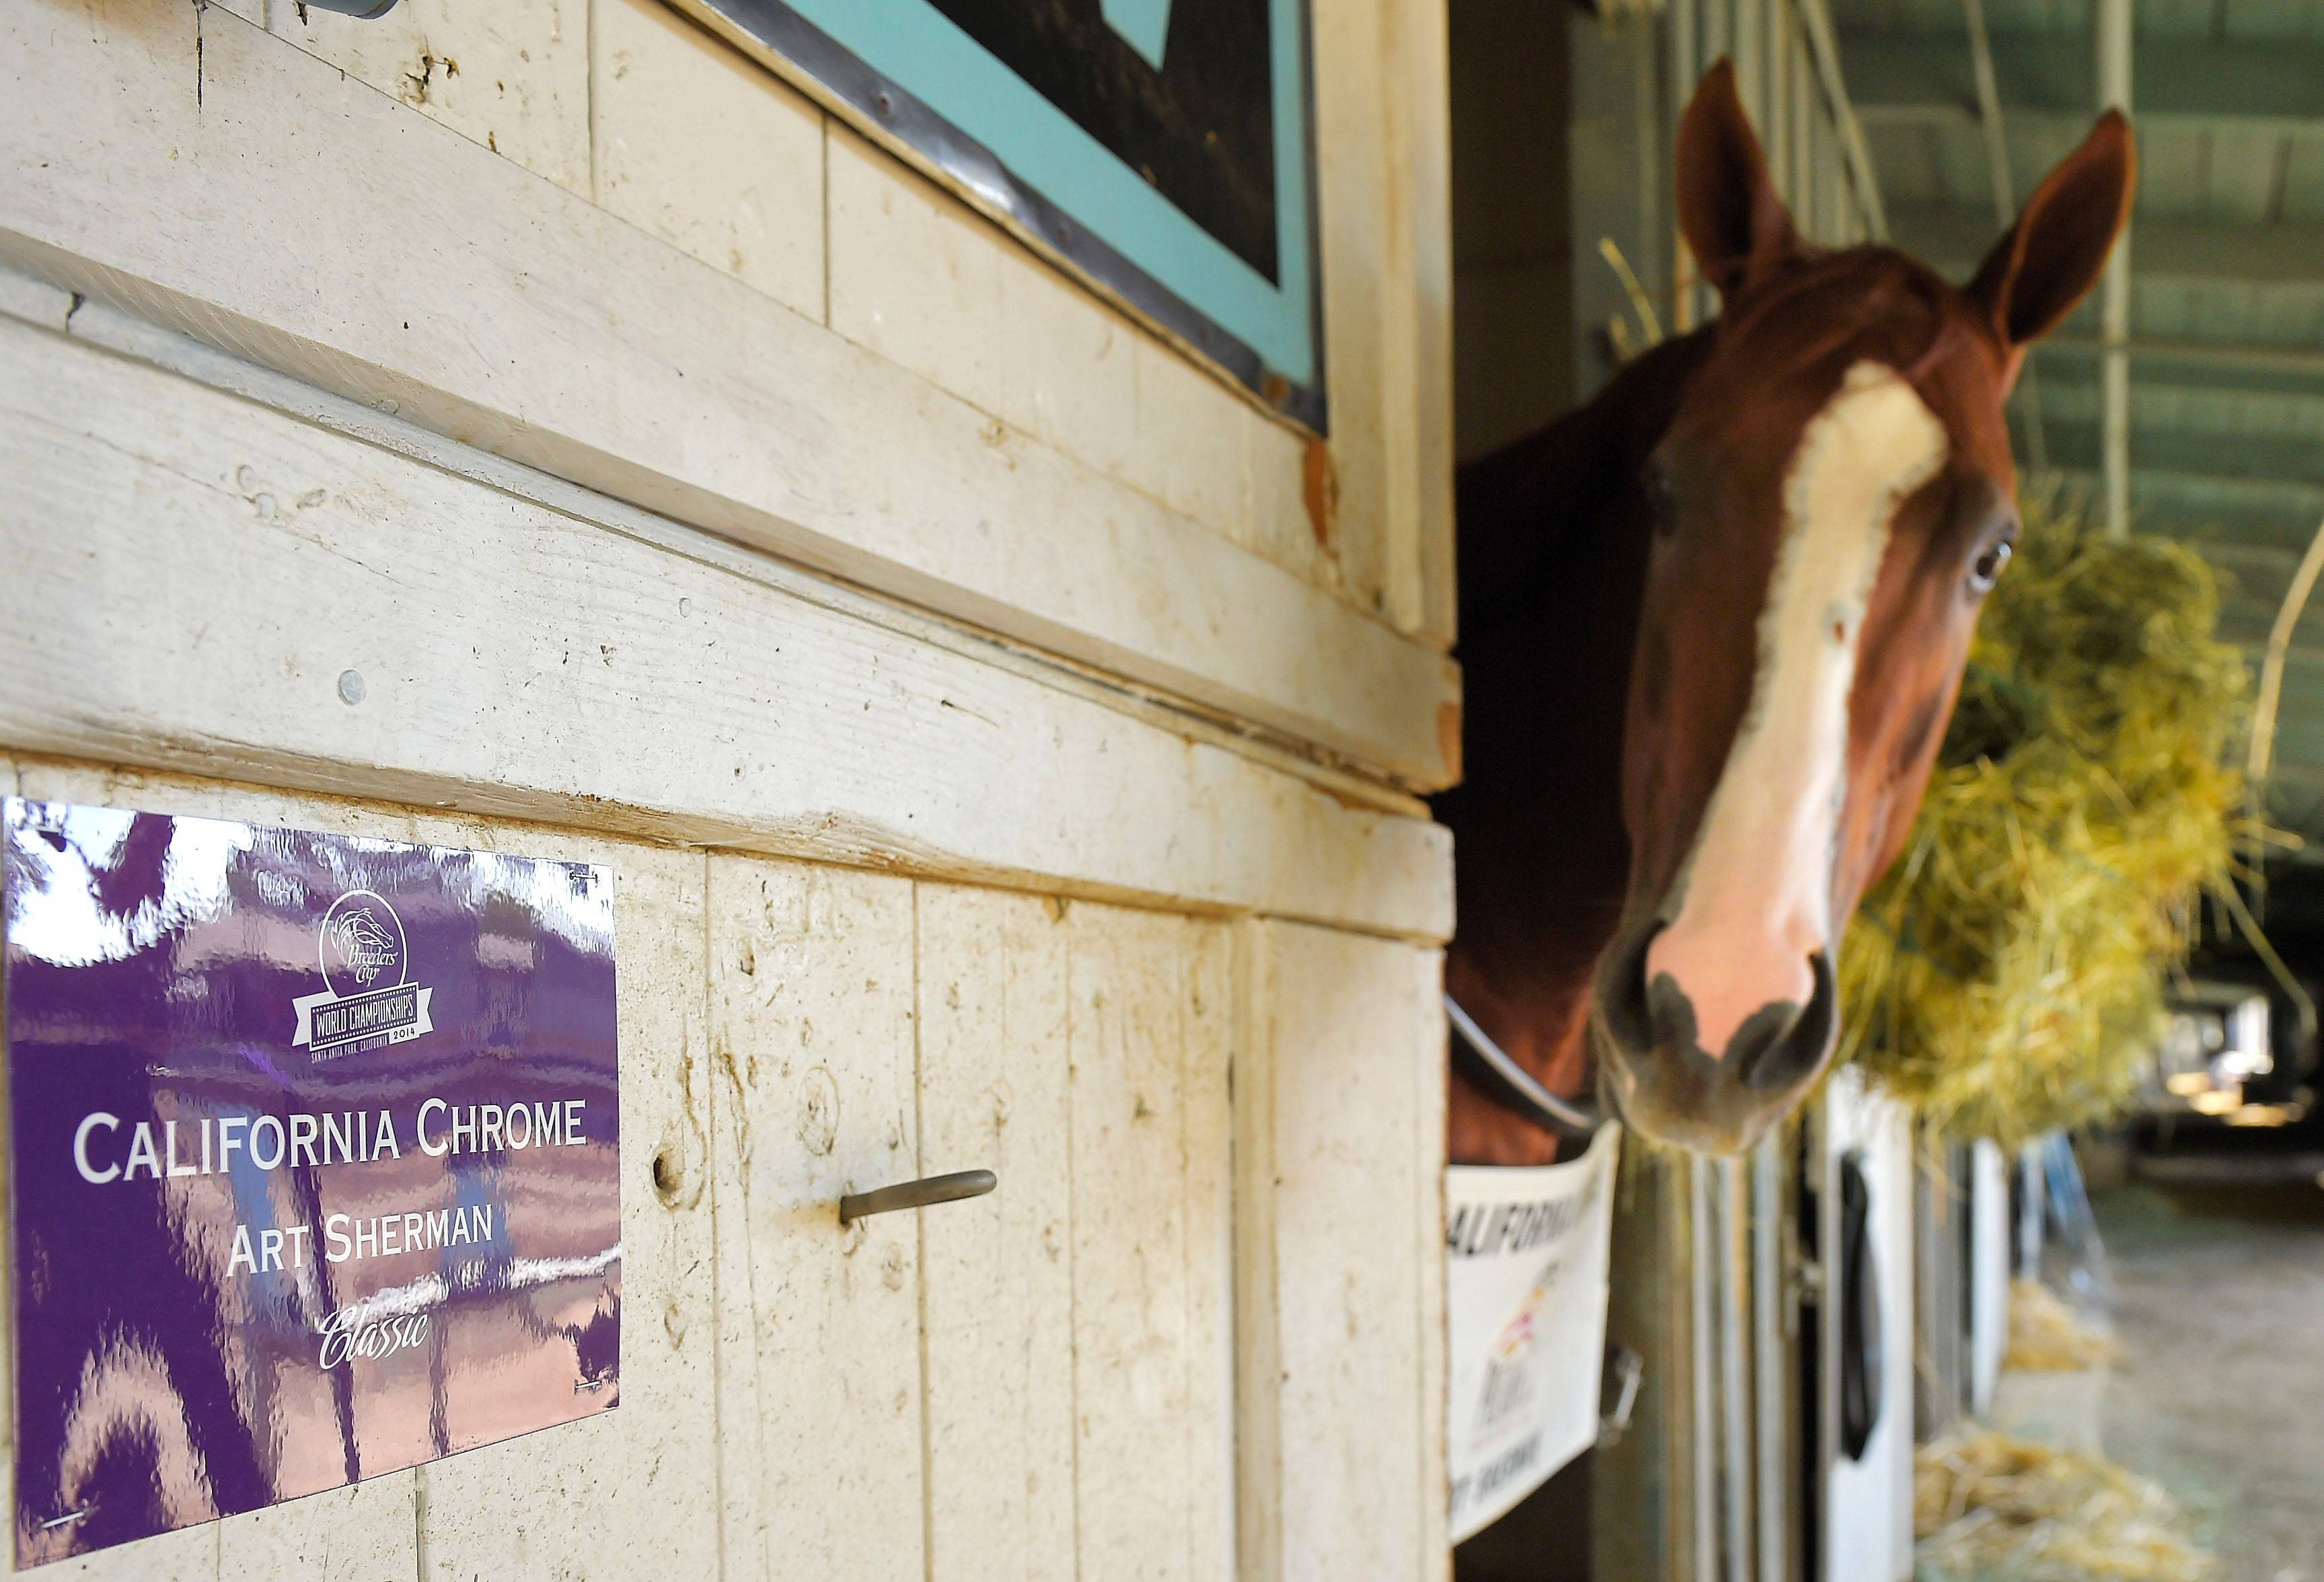 California Chrome is expected to be shipped to Arlington International in the next few weeks to prepare for the Arlington Million.